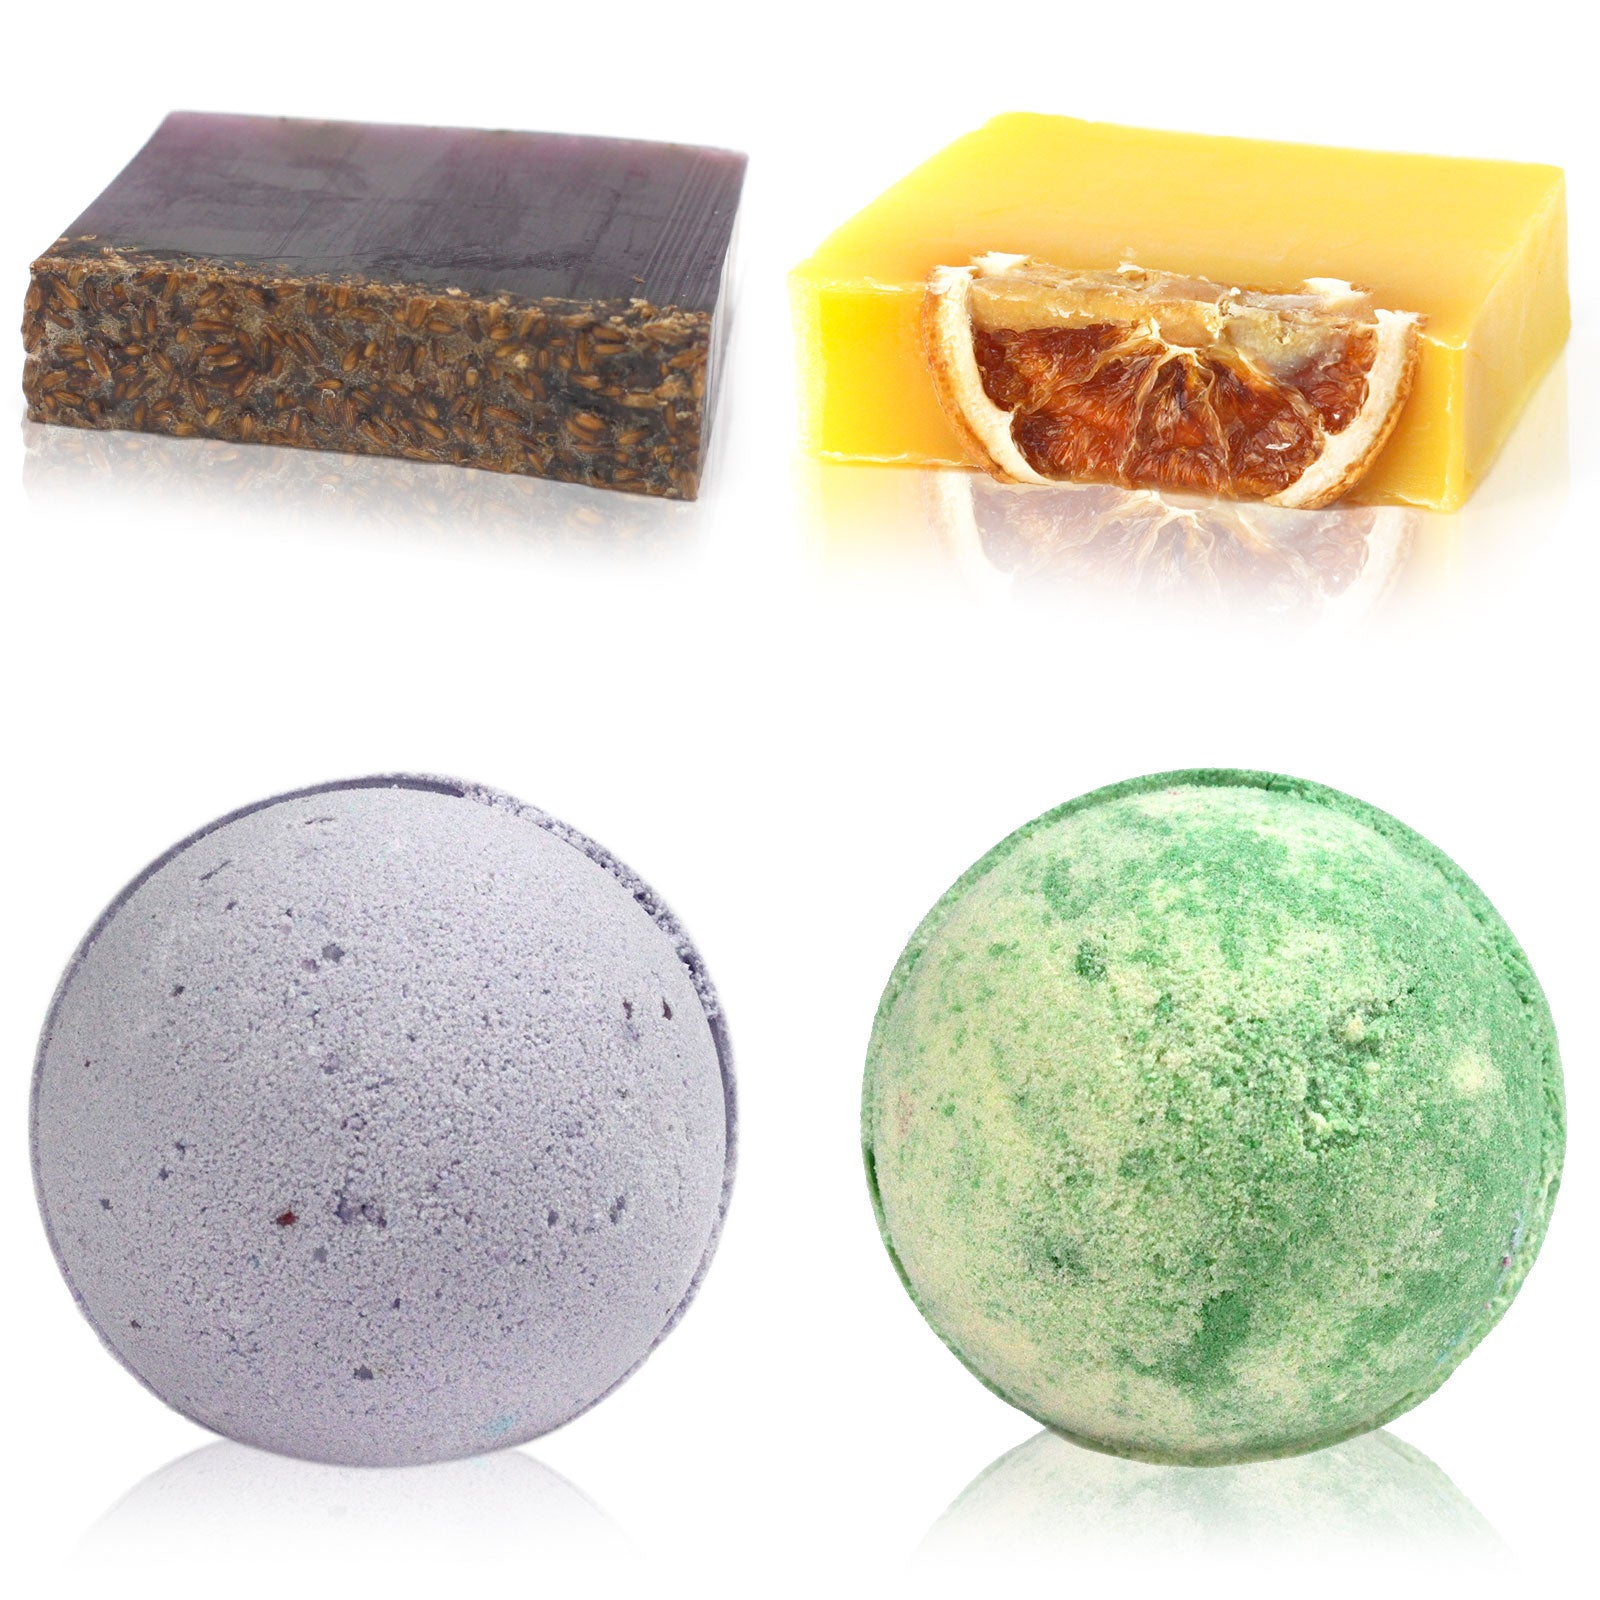 Soaps and Bath Bombs Set, Health & Beauty by Low Cost Gifts